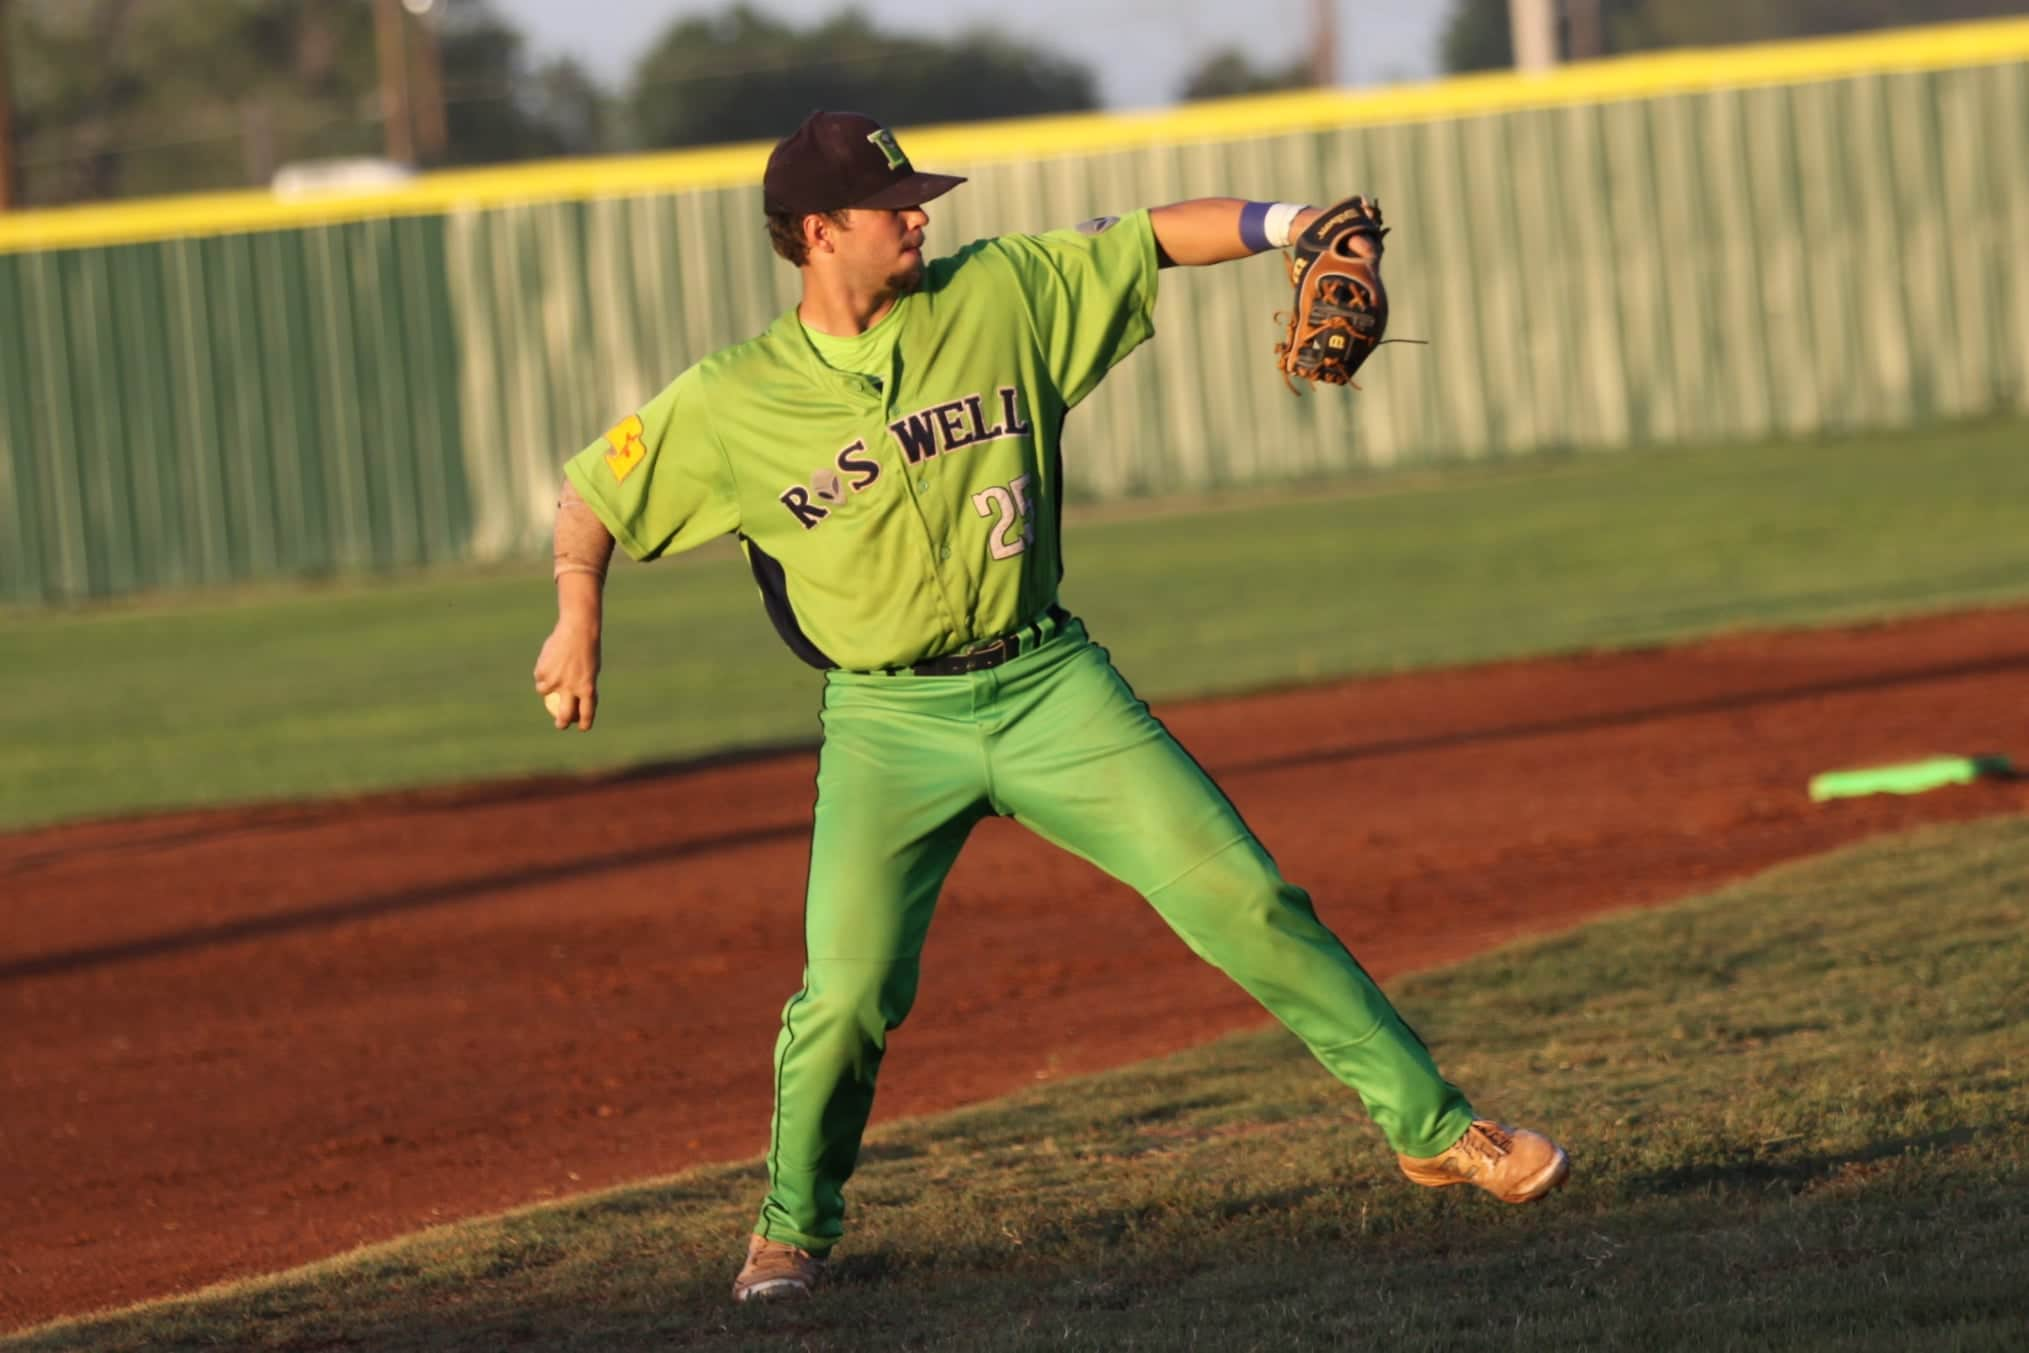 Pitcher for the Roswell Invaders baseball team